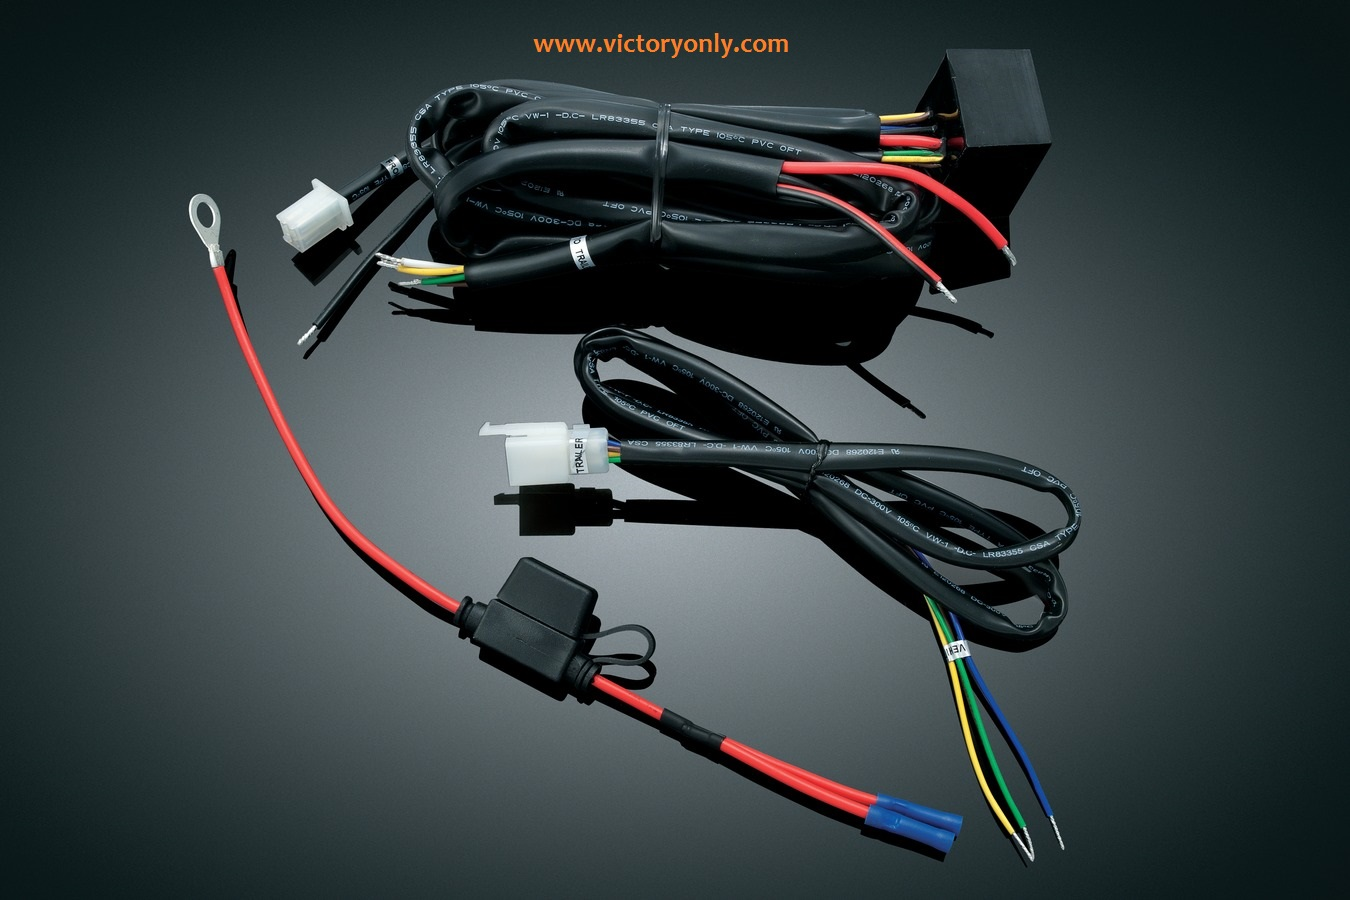 16997_kur_7671_tt_u_13_1350x900_RGB_72DPI trailer wiring harnesses for victory motorcycle motorcycle trailer wiring harness at alyssarenee.co